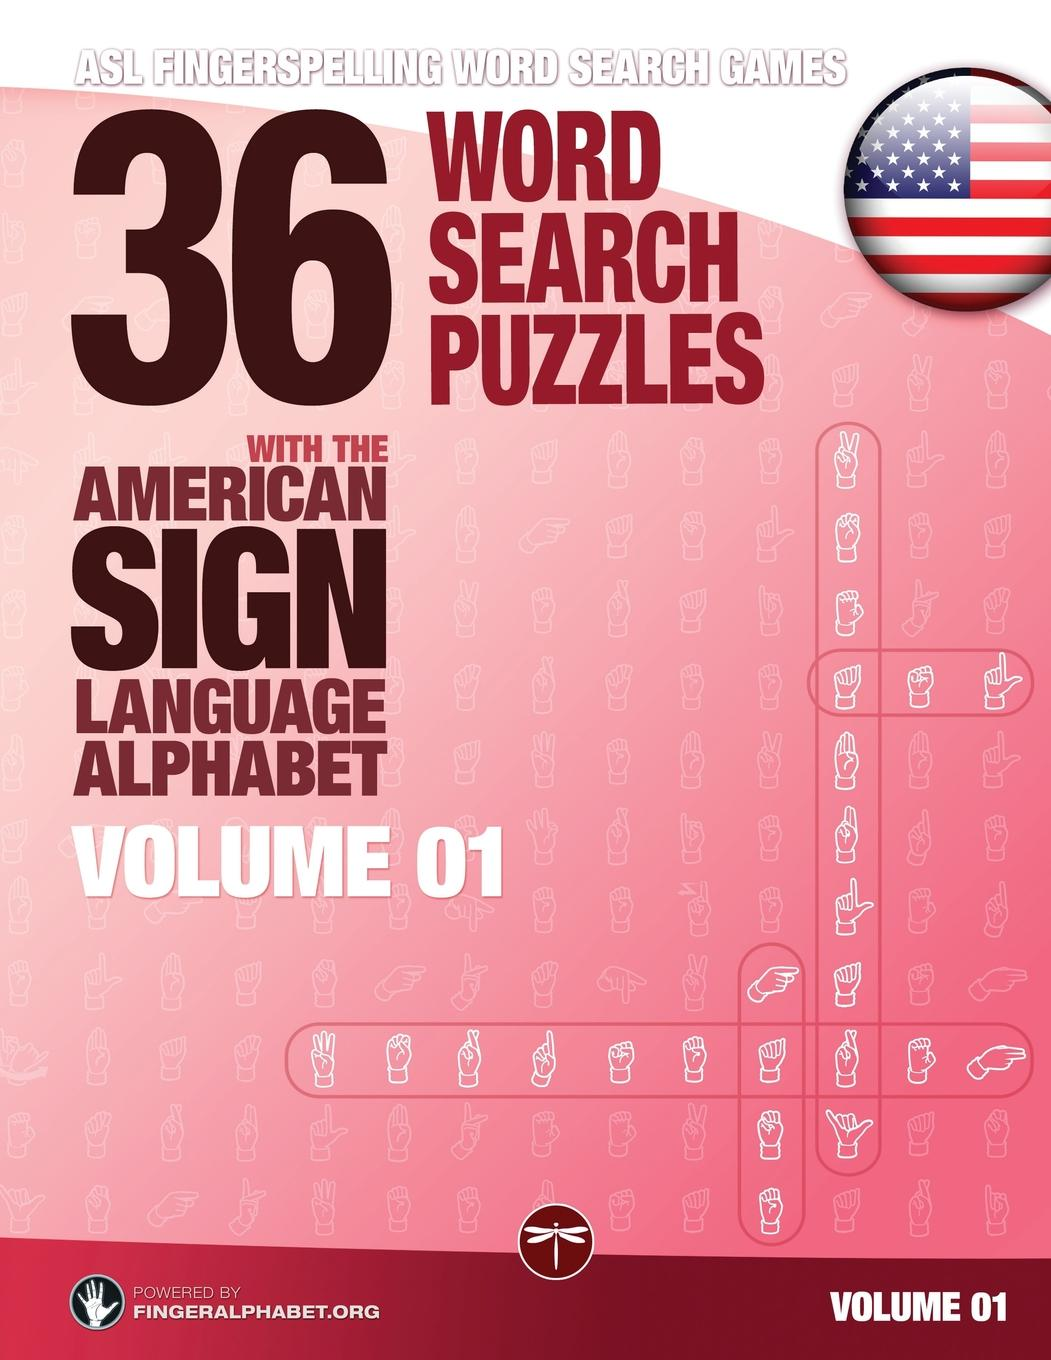 Asl Fingerspelling Word Search 36 Word Search Puzzles